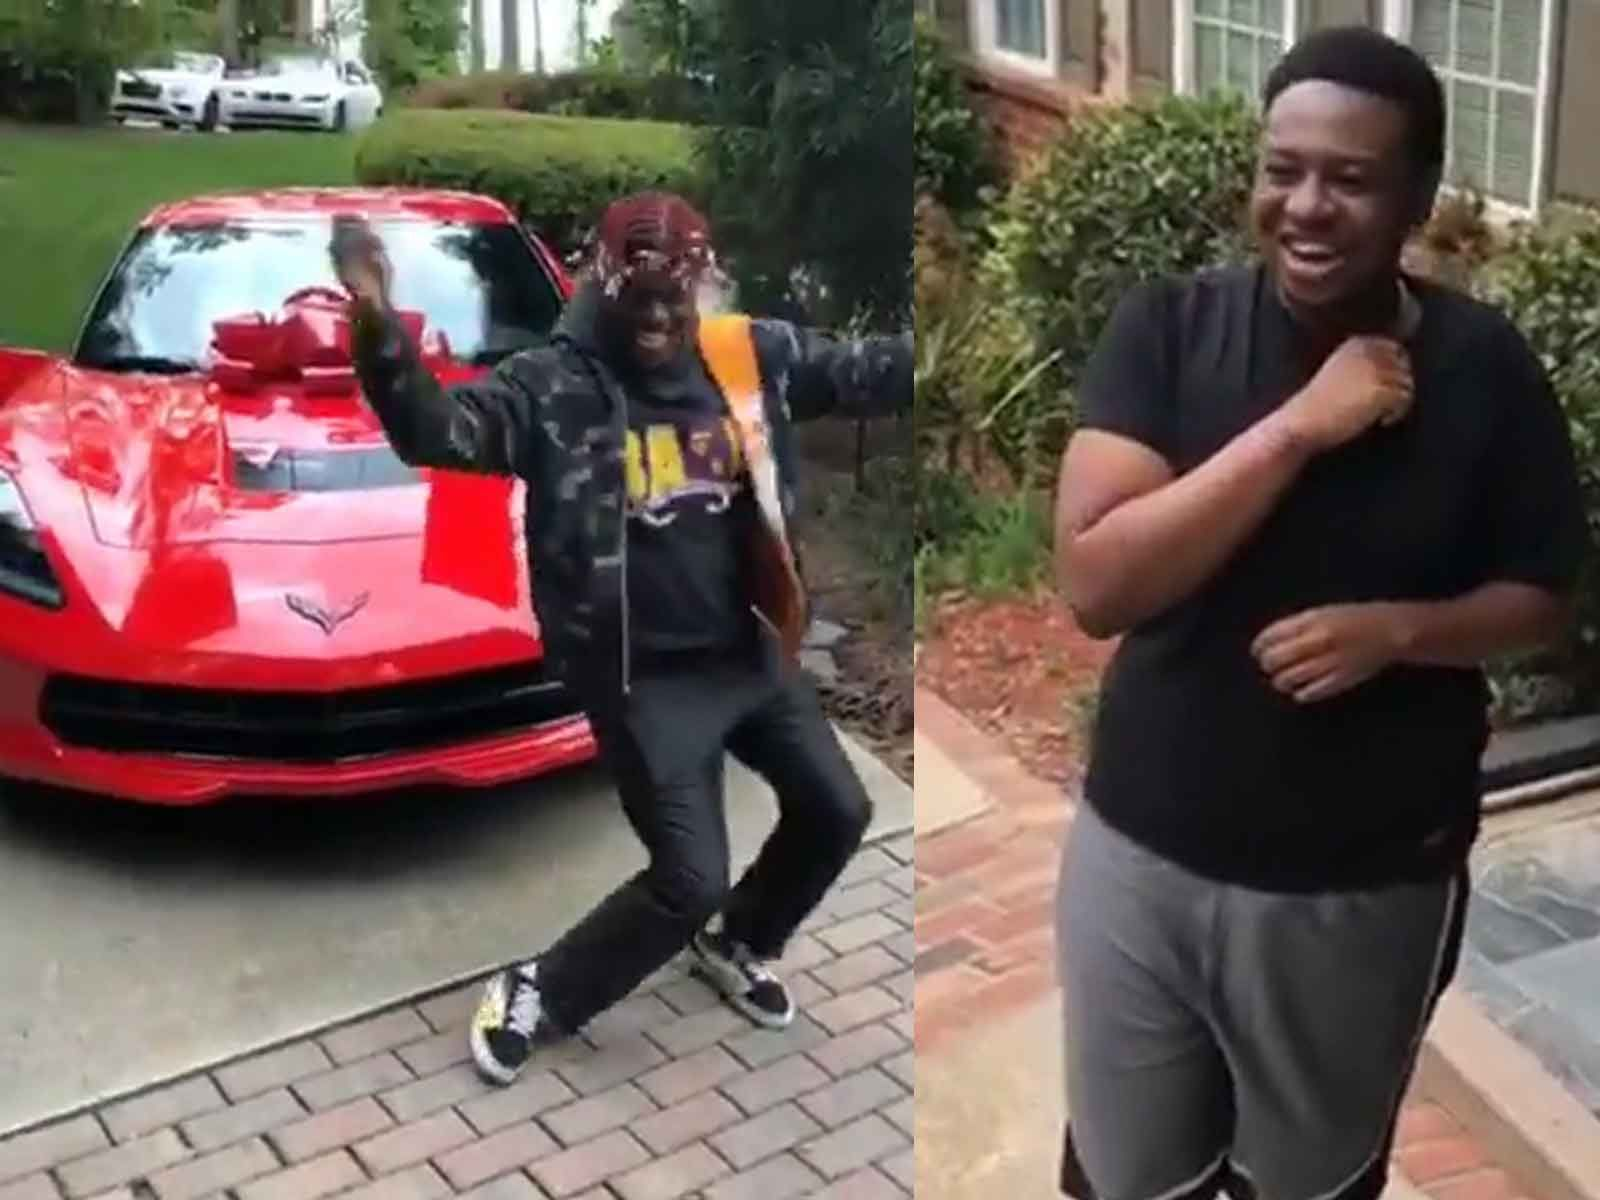 Lil Yachty Gifts Friend a New Vette for 21st Bday